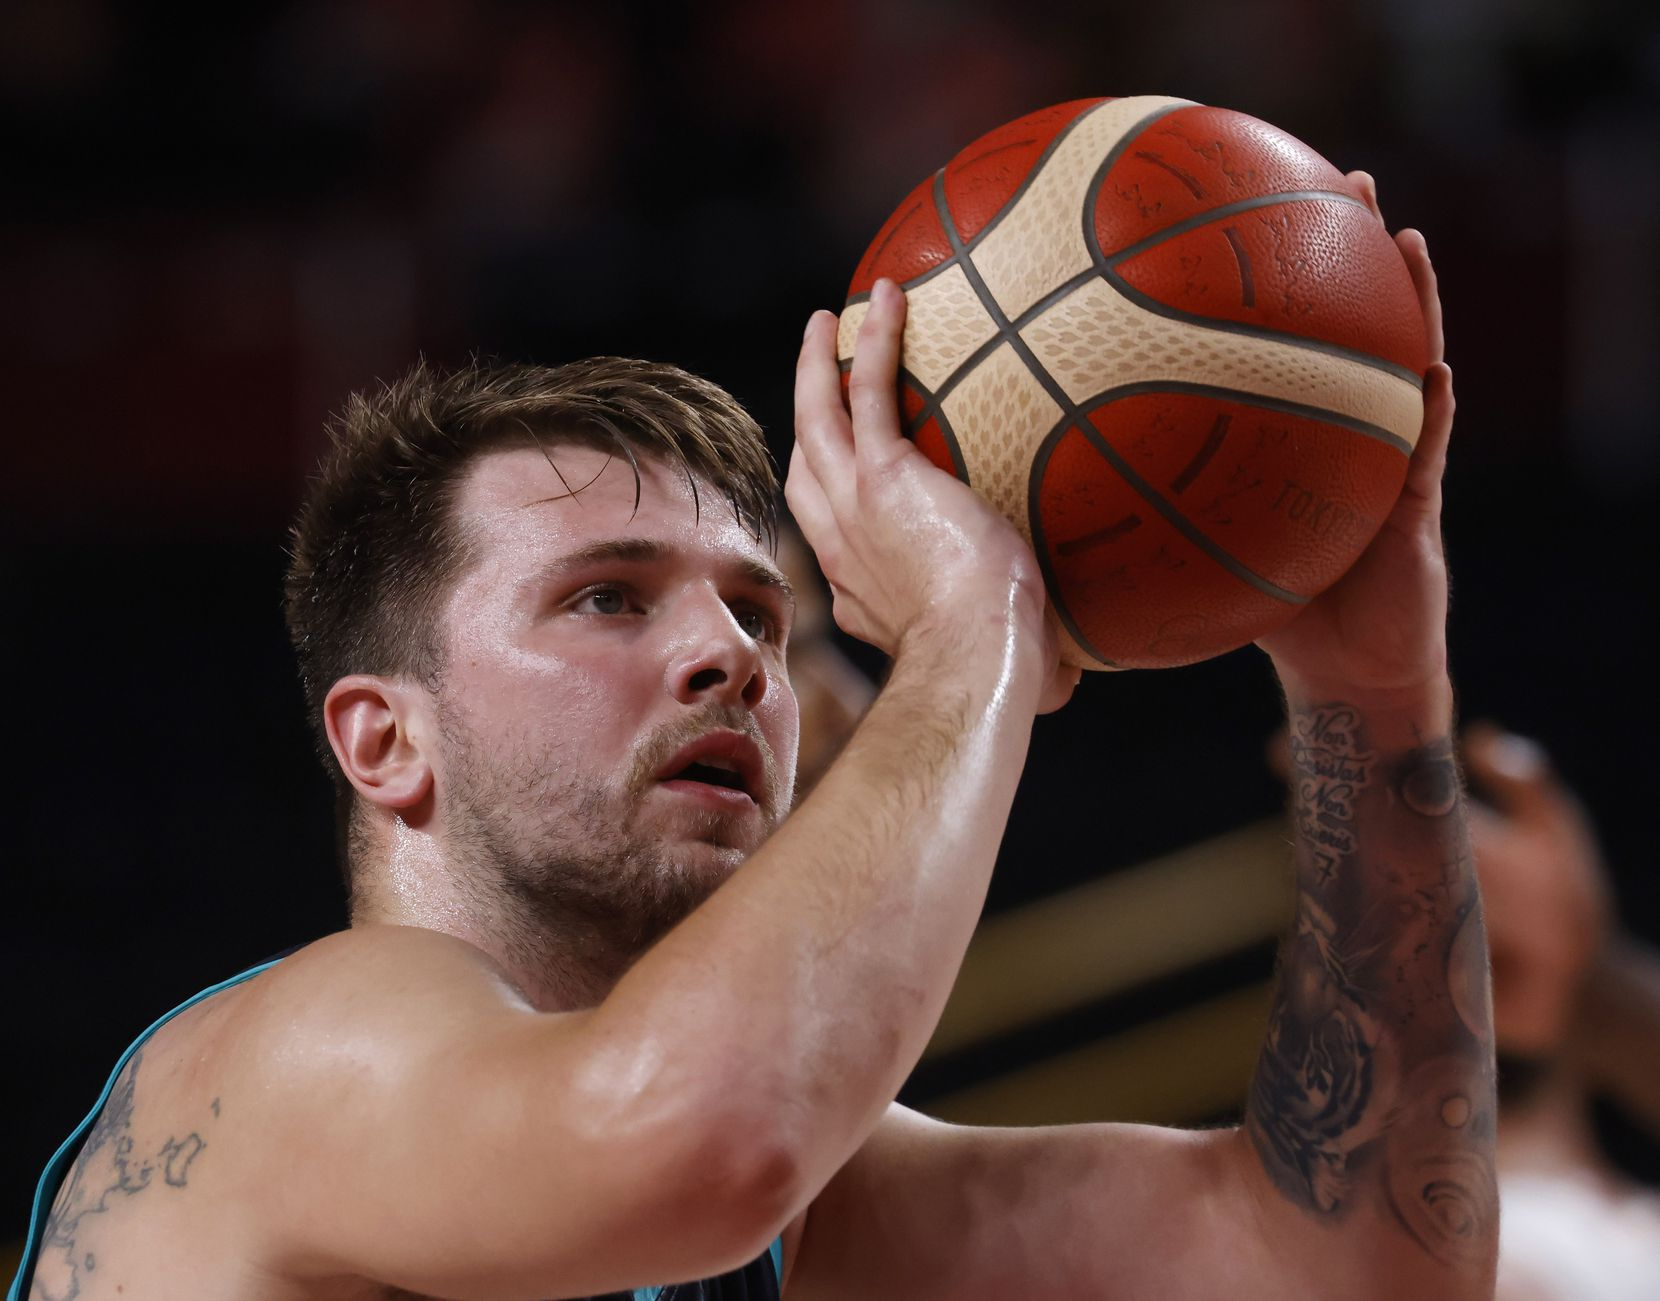 Slovenia's Luka Doncic (77) shoots a free throw in a game against France's during the first half of a men's basketball semifinal at the postponed 2020 Tokyo Olympics at Saitama Super Arena, on Thursday, August 5, 2021, in Saitama, Japan. (Vernon Bryant/The Dallas Morning News)